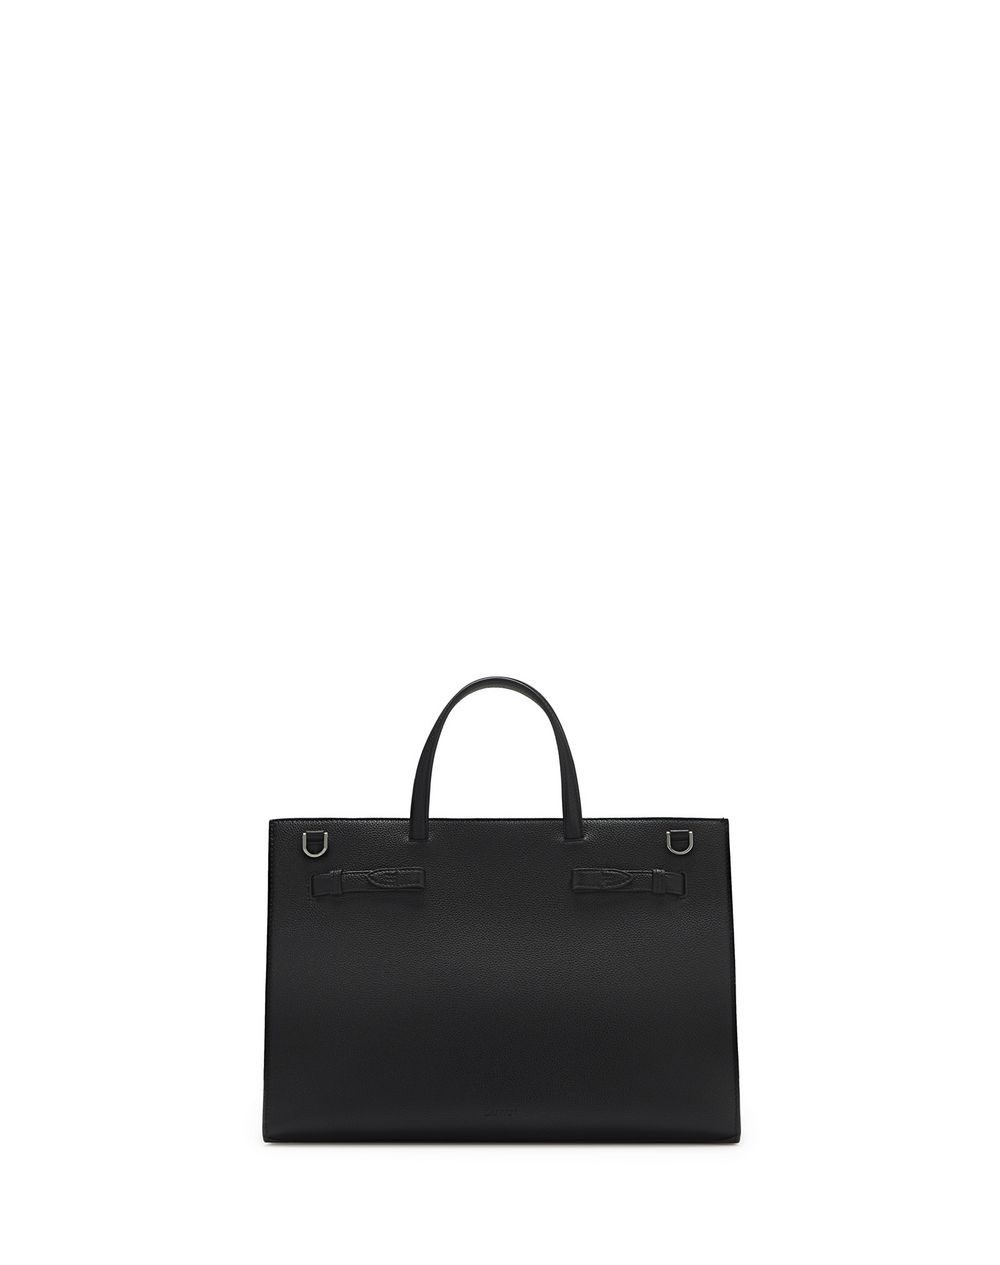 GRAINED LEATHER BOGEY BAG MM - Lanvin